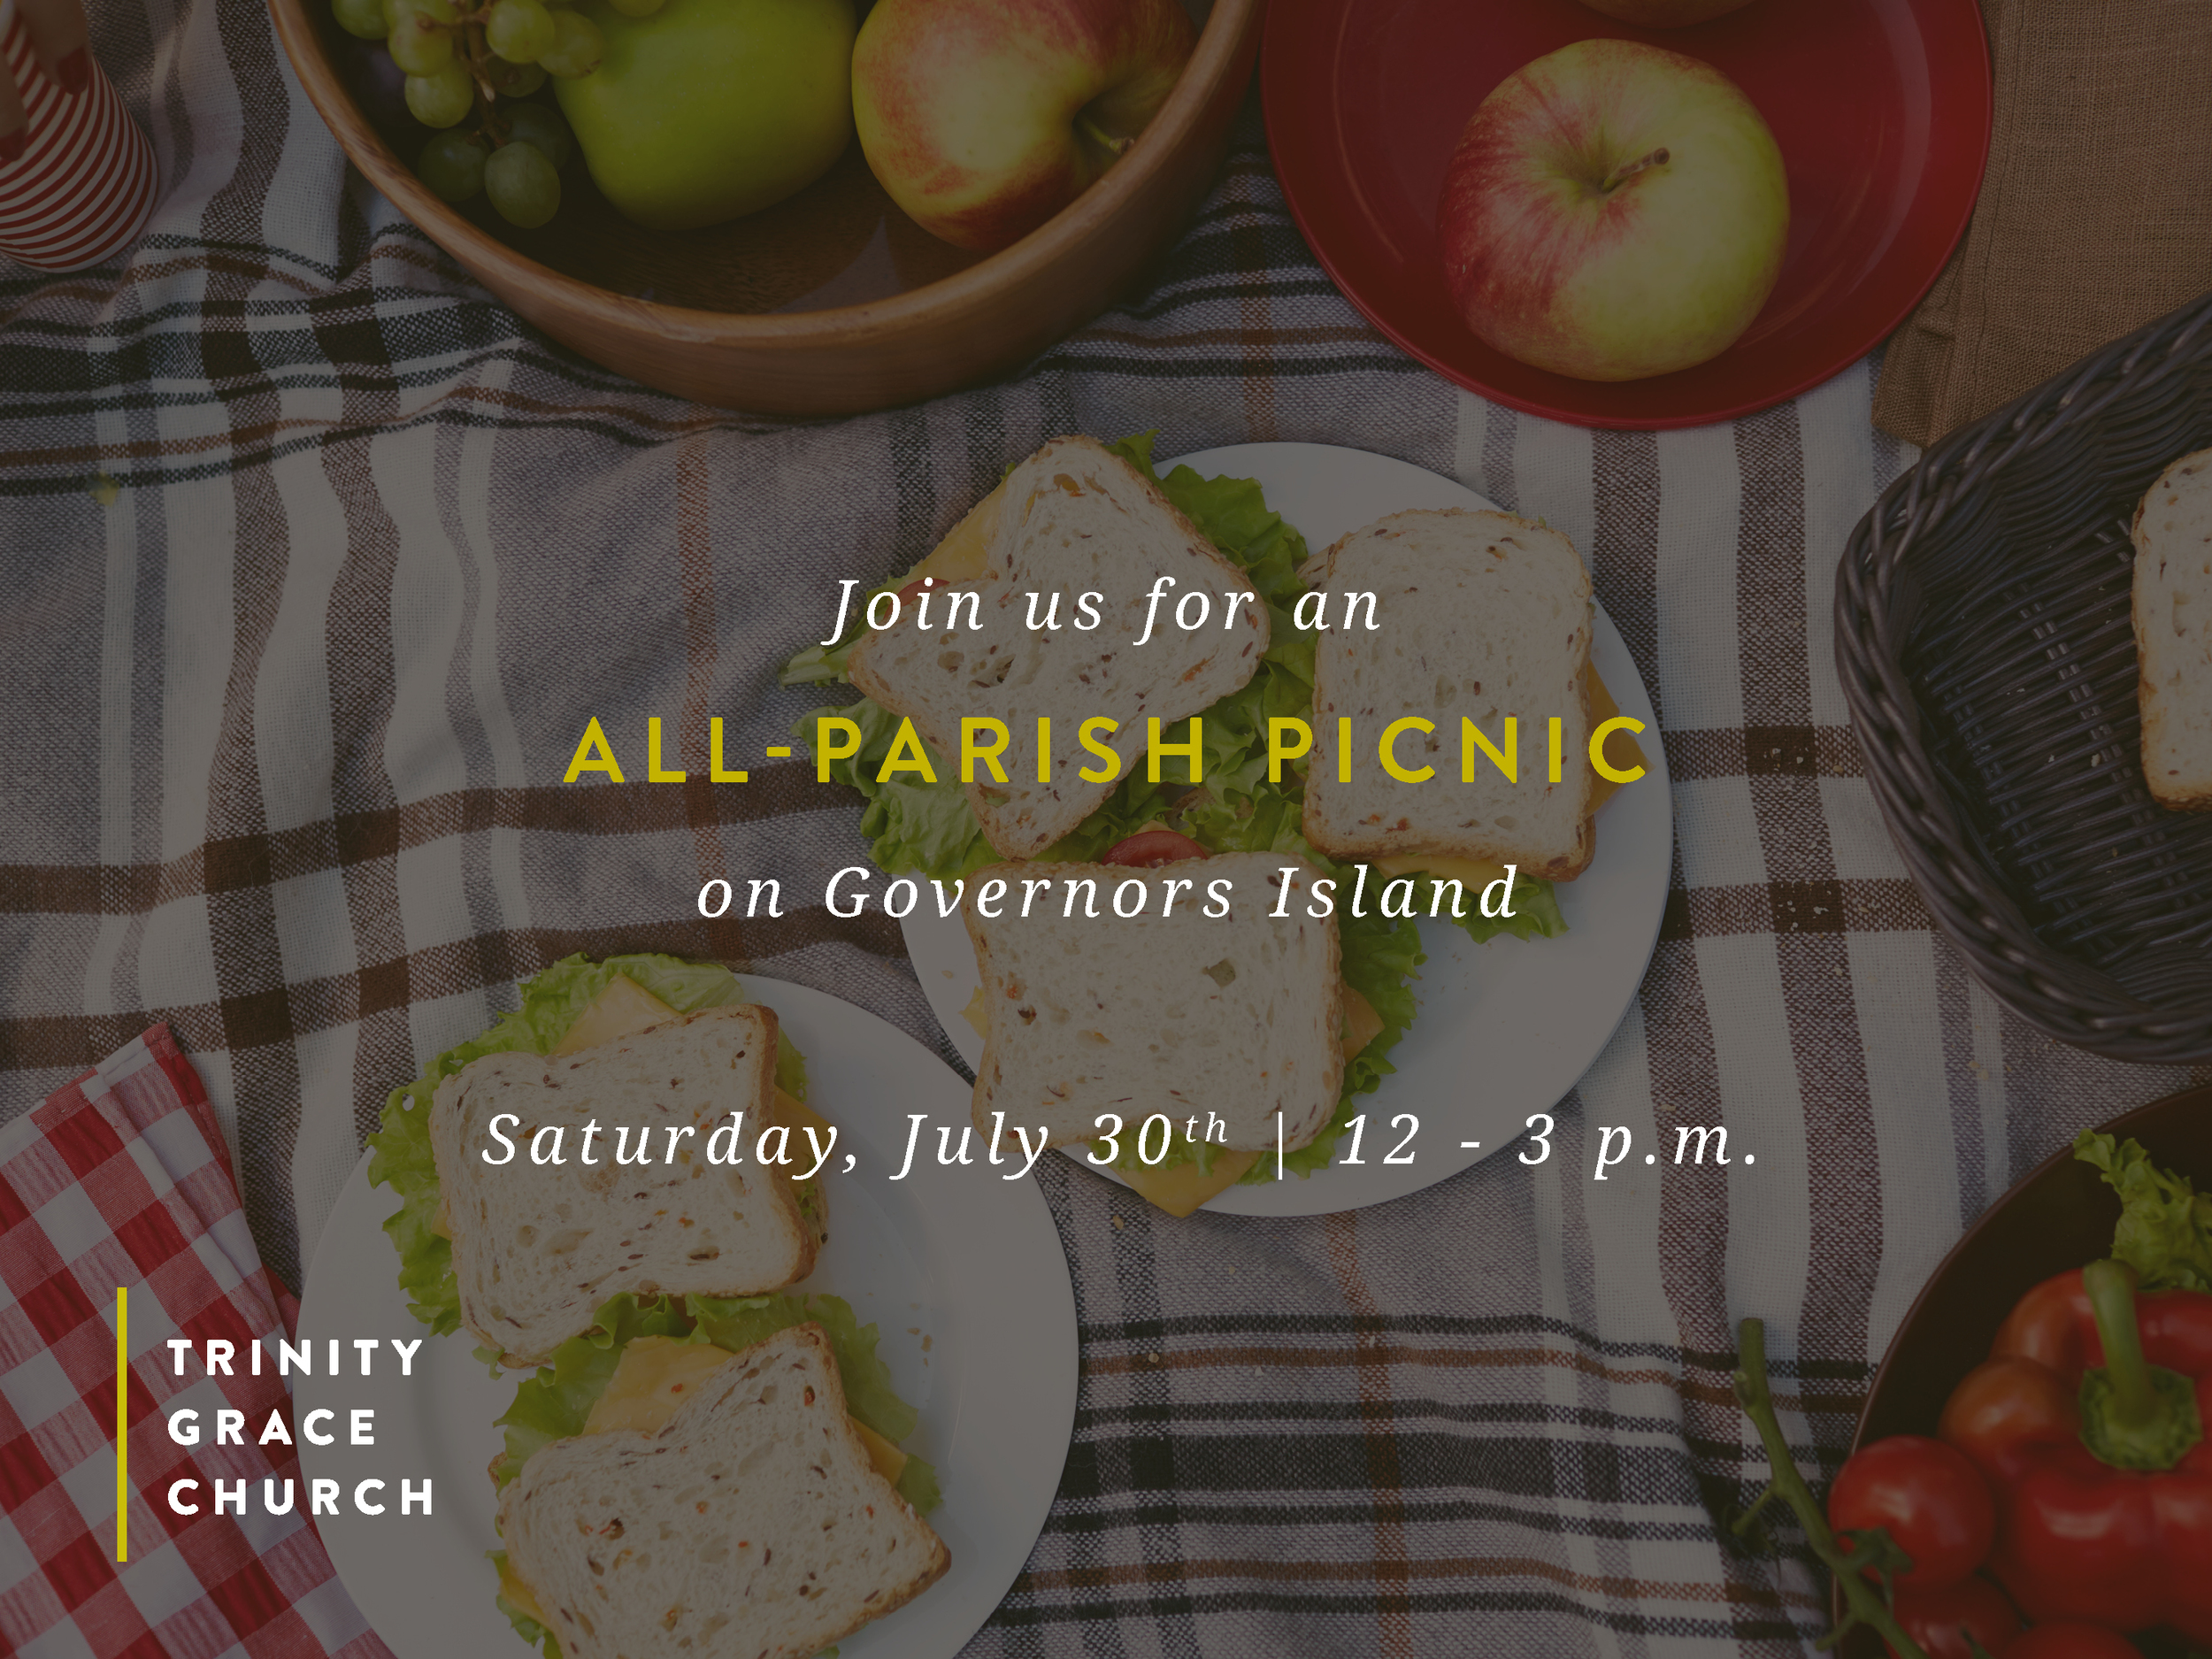 Mark your calendars for Saturday, July 30 when we'll gather with our entire church family for one massive picnic on Governor's Island. Bring a friend, blanket, and favorite food to share for an afternoon of fun in the sun.